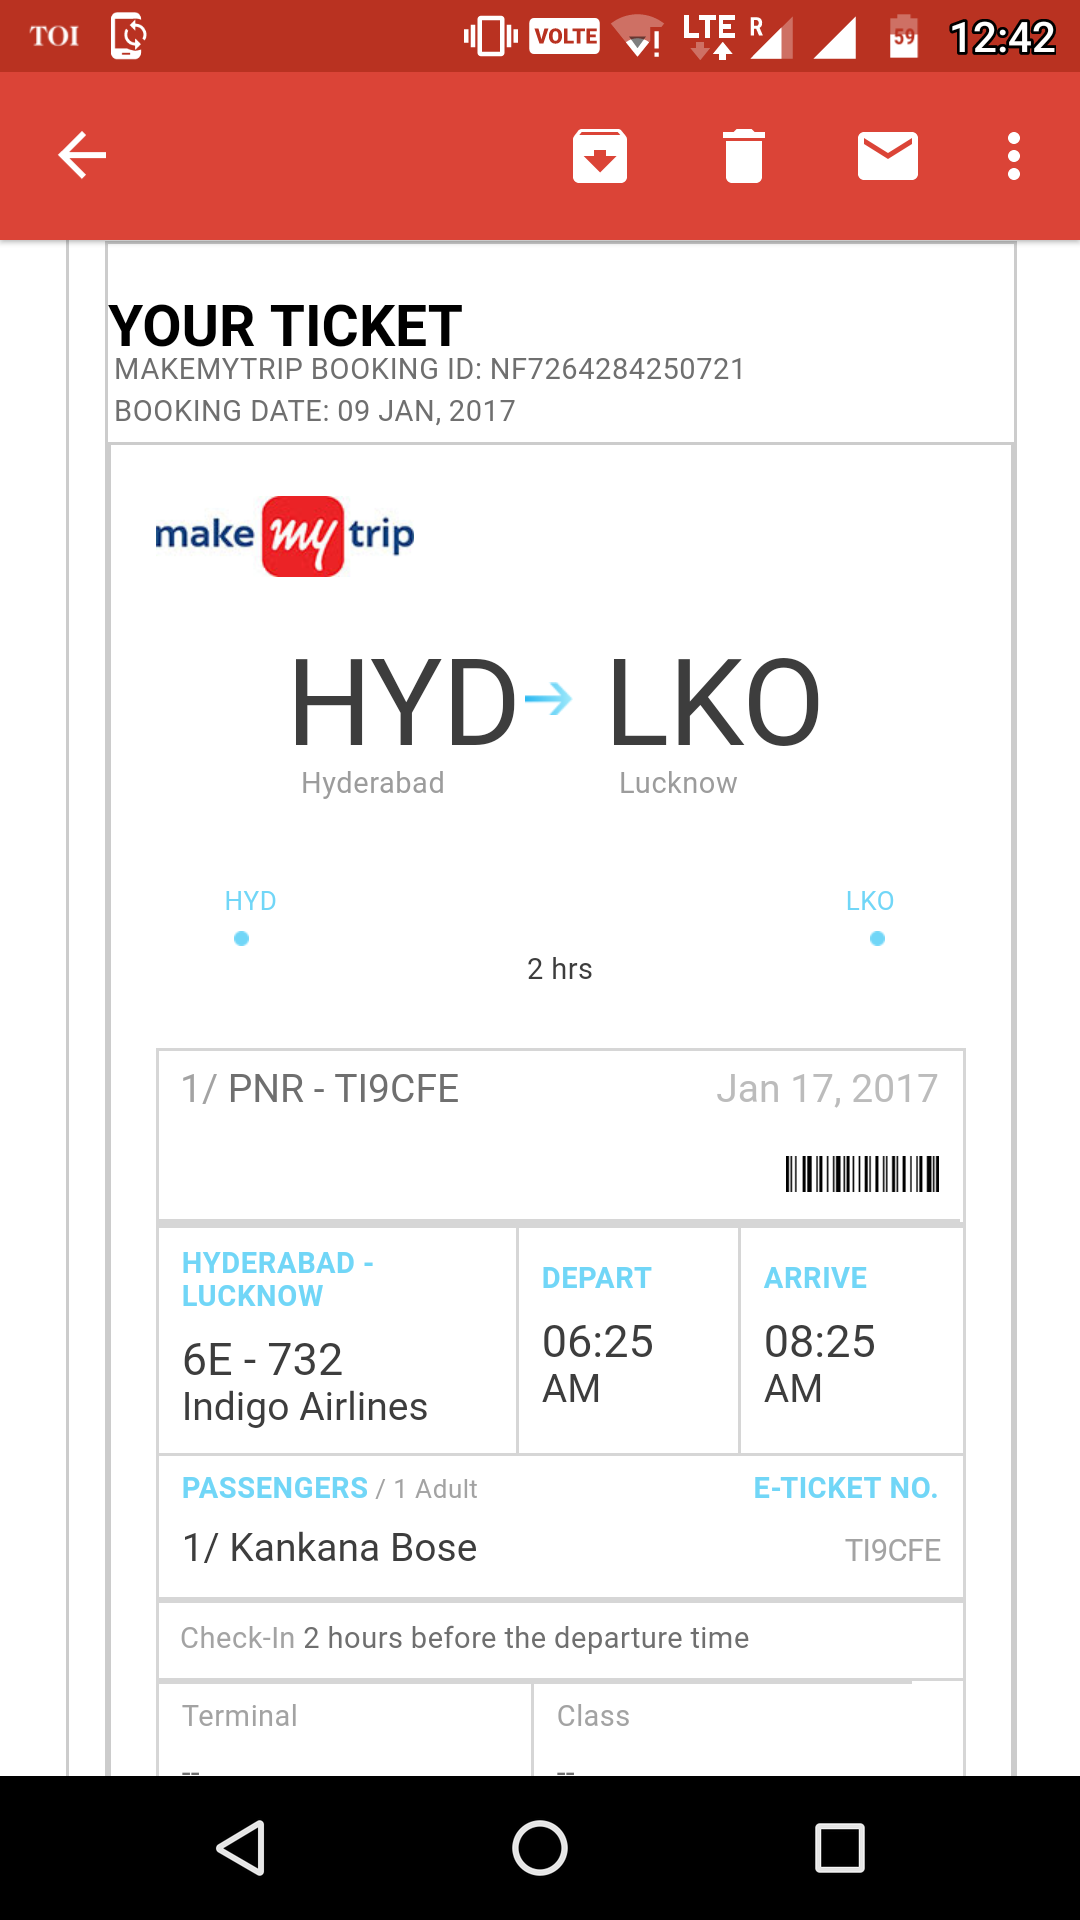 Use These Latest Indigo Airlines Promo Codes, Discount Coupons, Flights Offers and Deals To Get Upto Rs.1000 Extra Discount on All Go Indigo Flight Tickets.